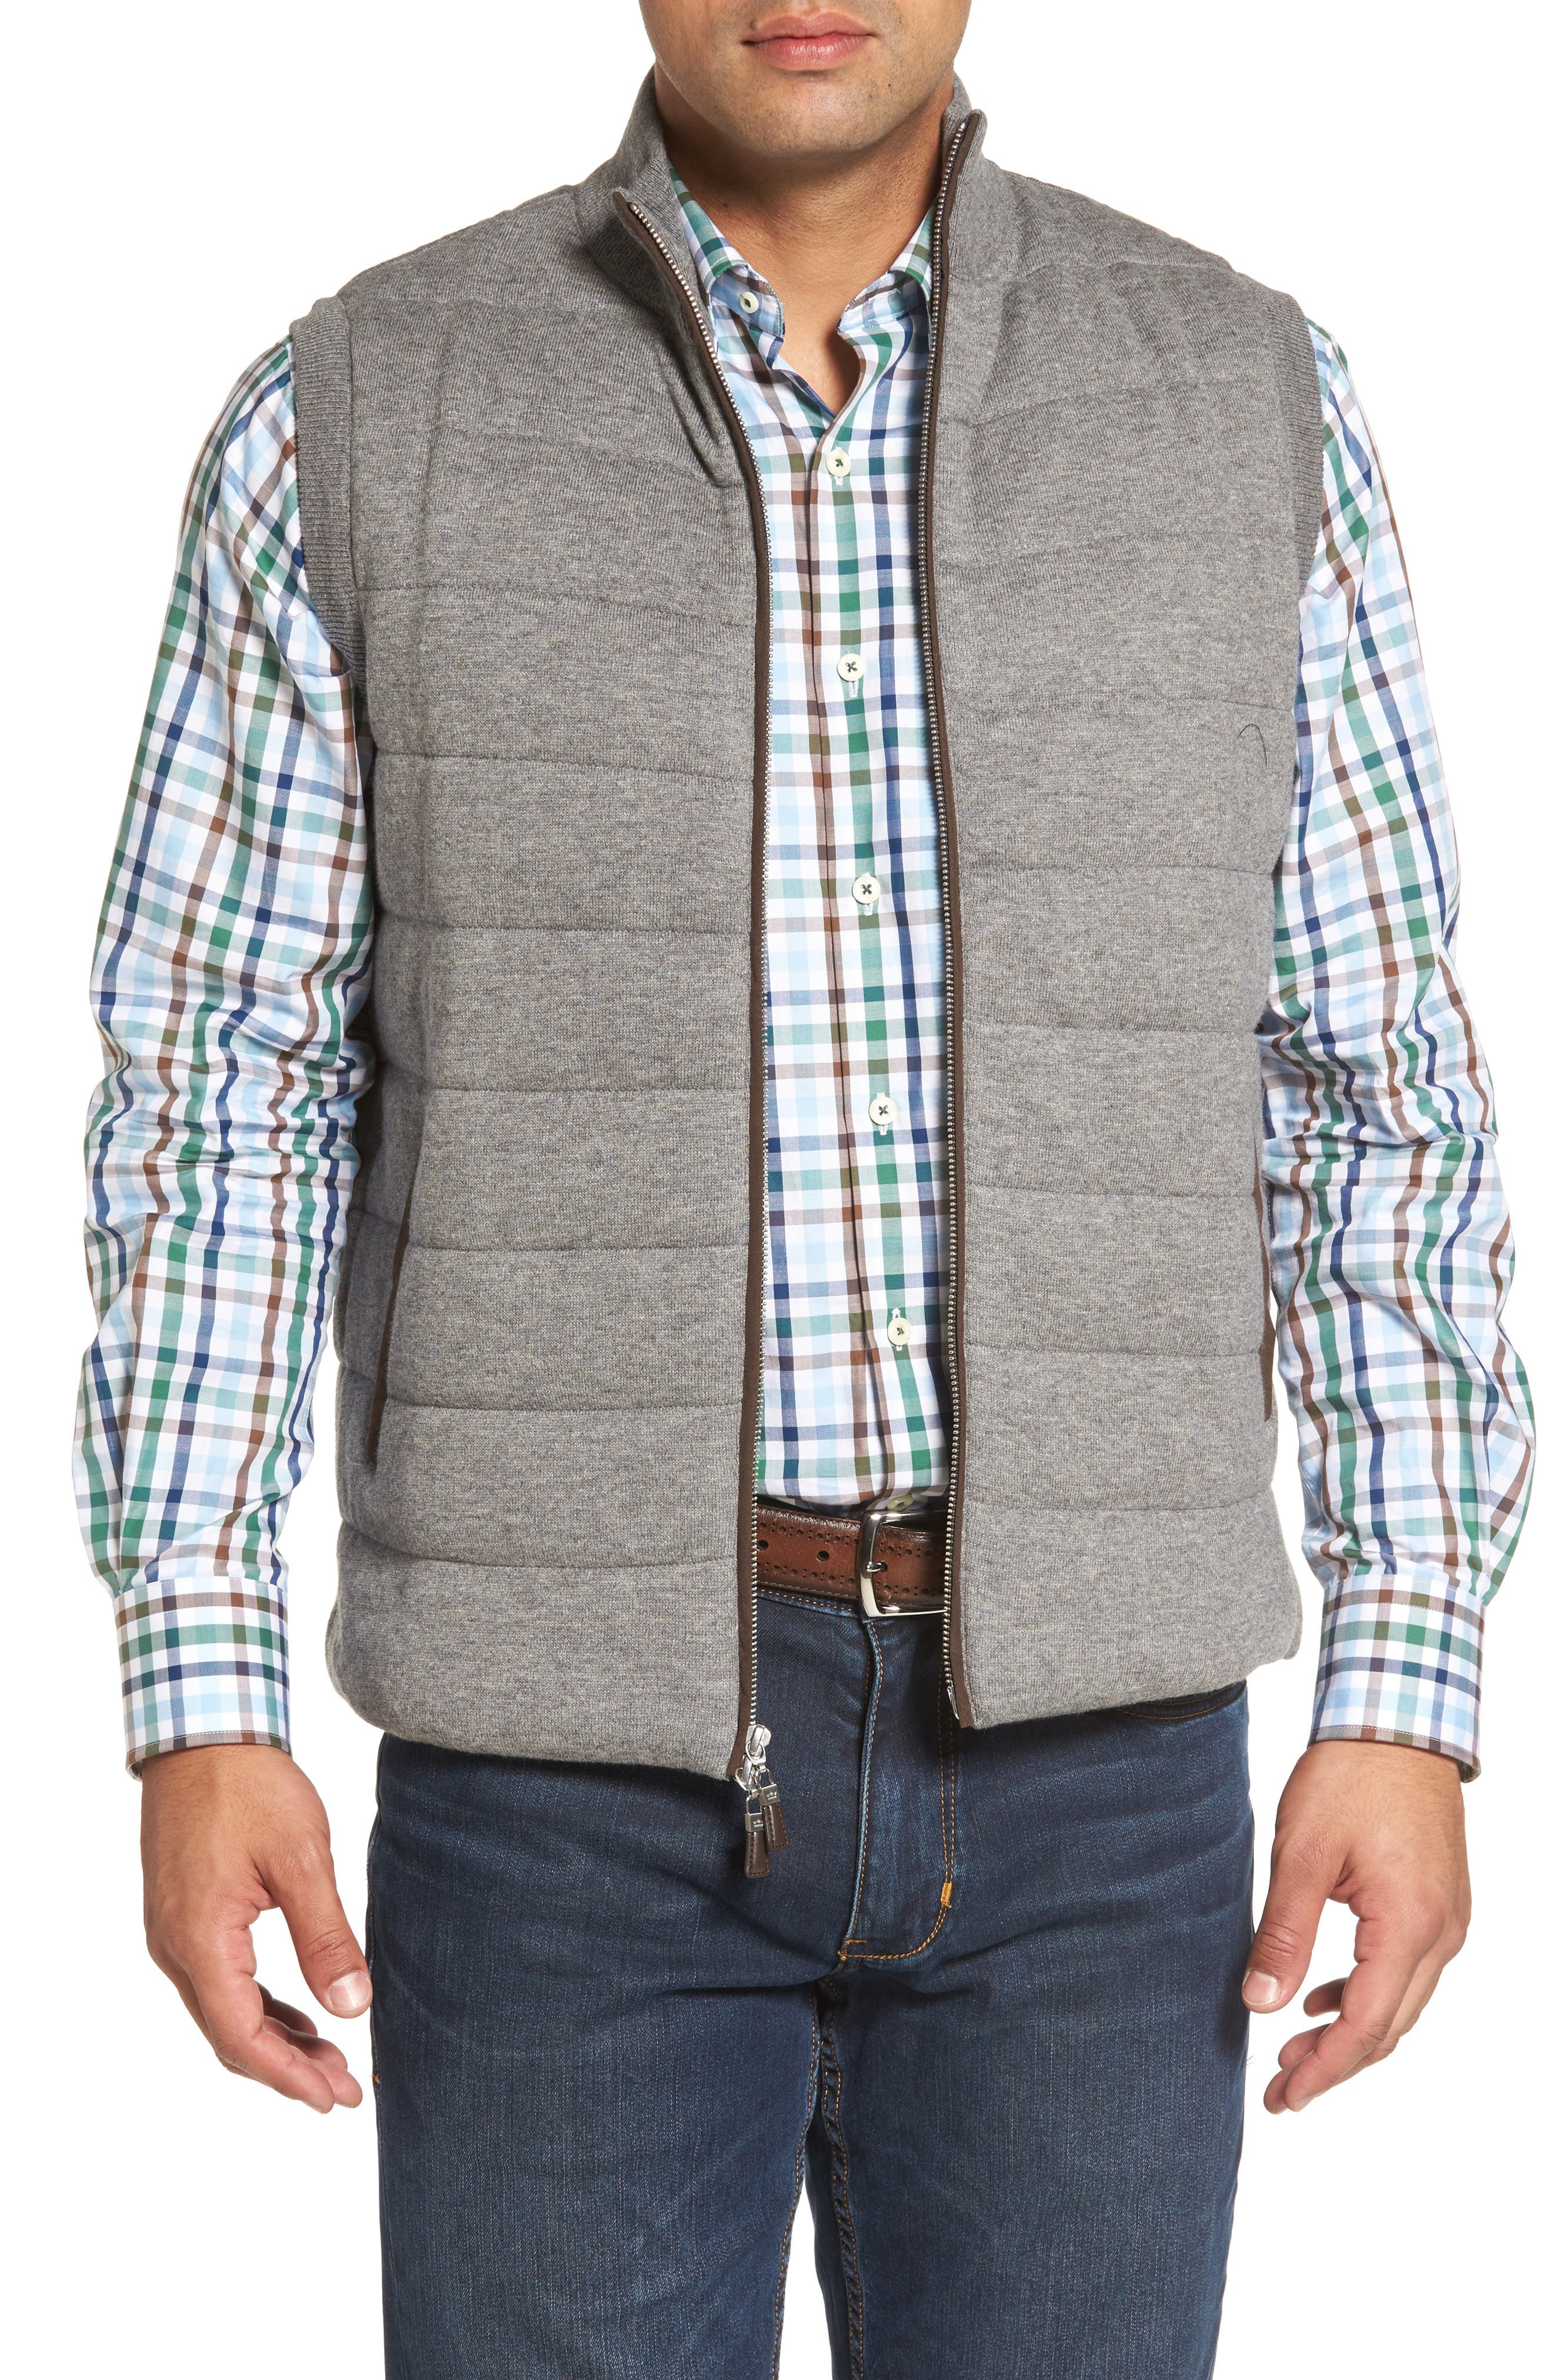 Quilted Wool & Cotton Full Zip Vest,                             Main thumbnail 1, color,                             020